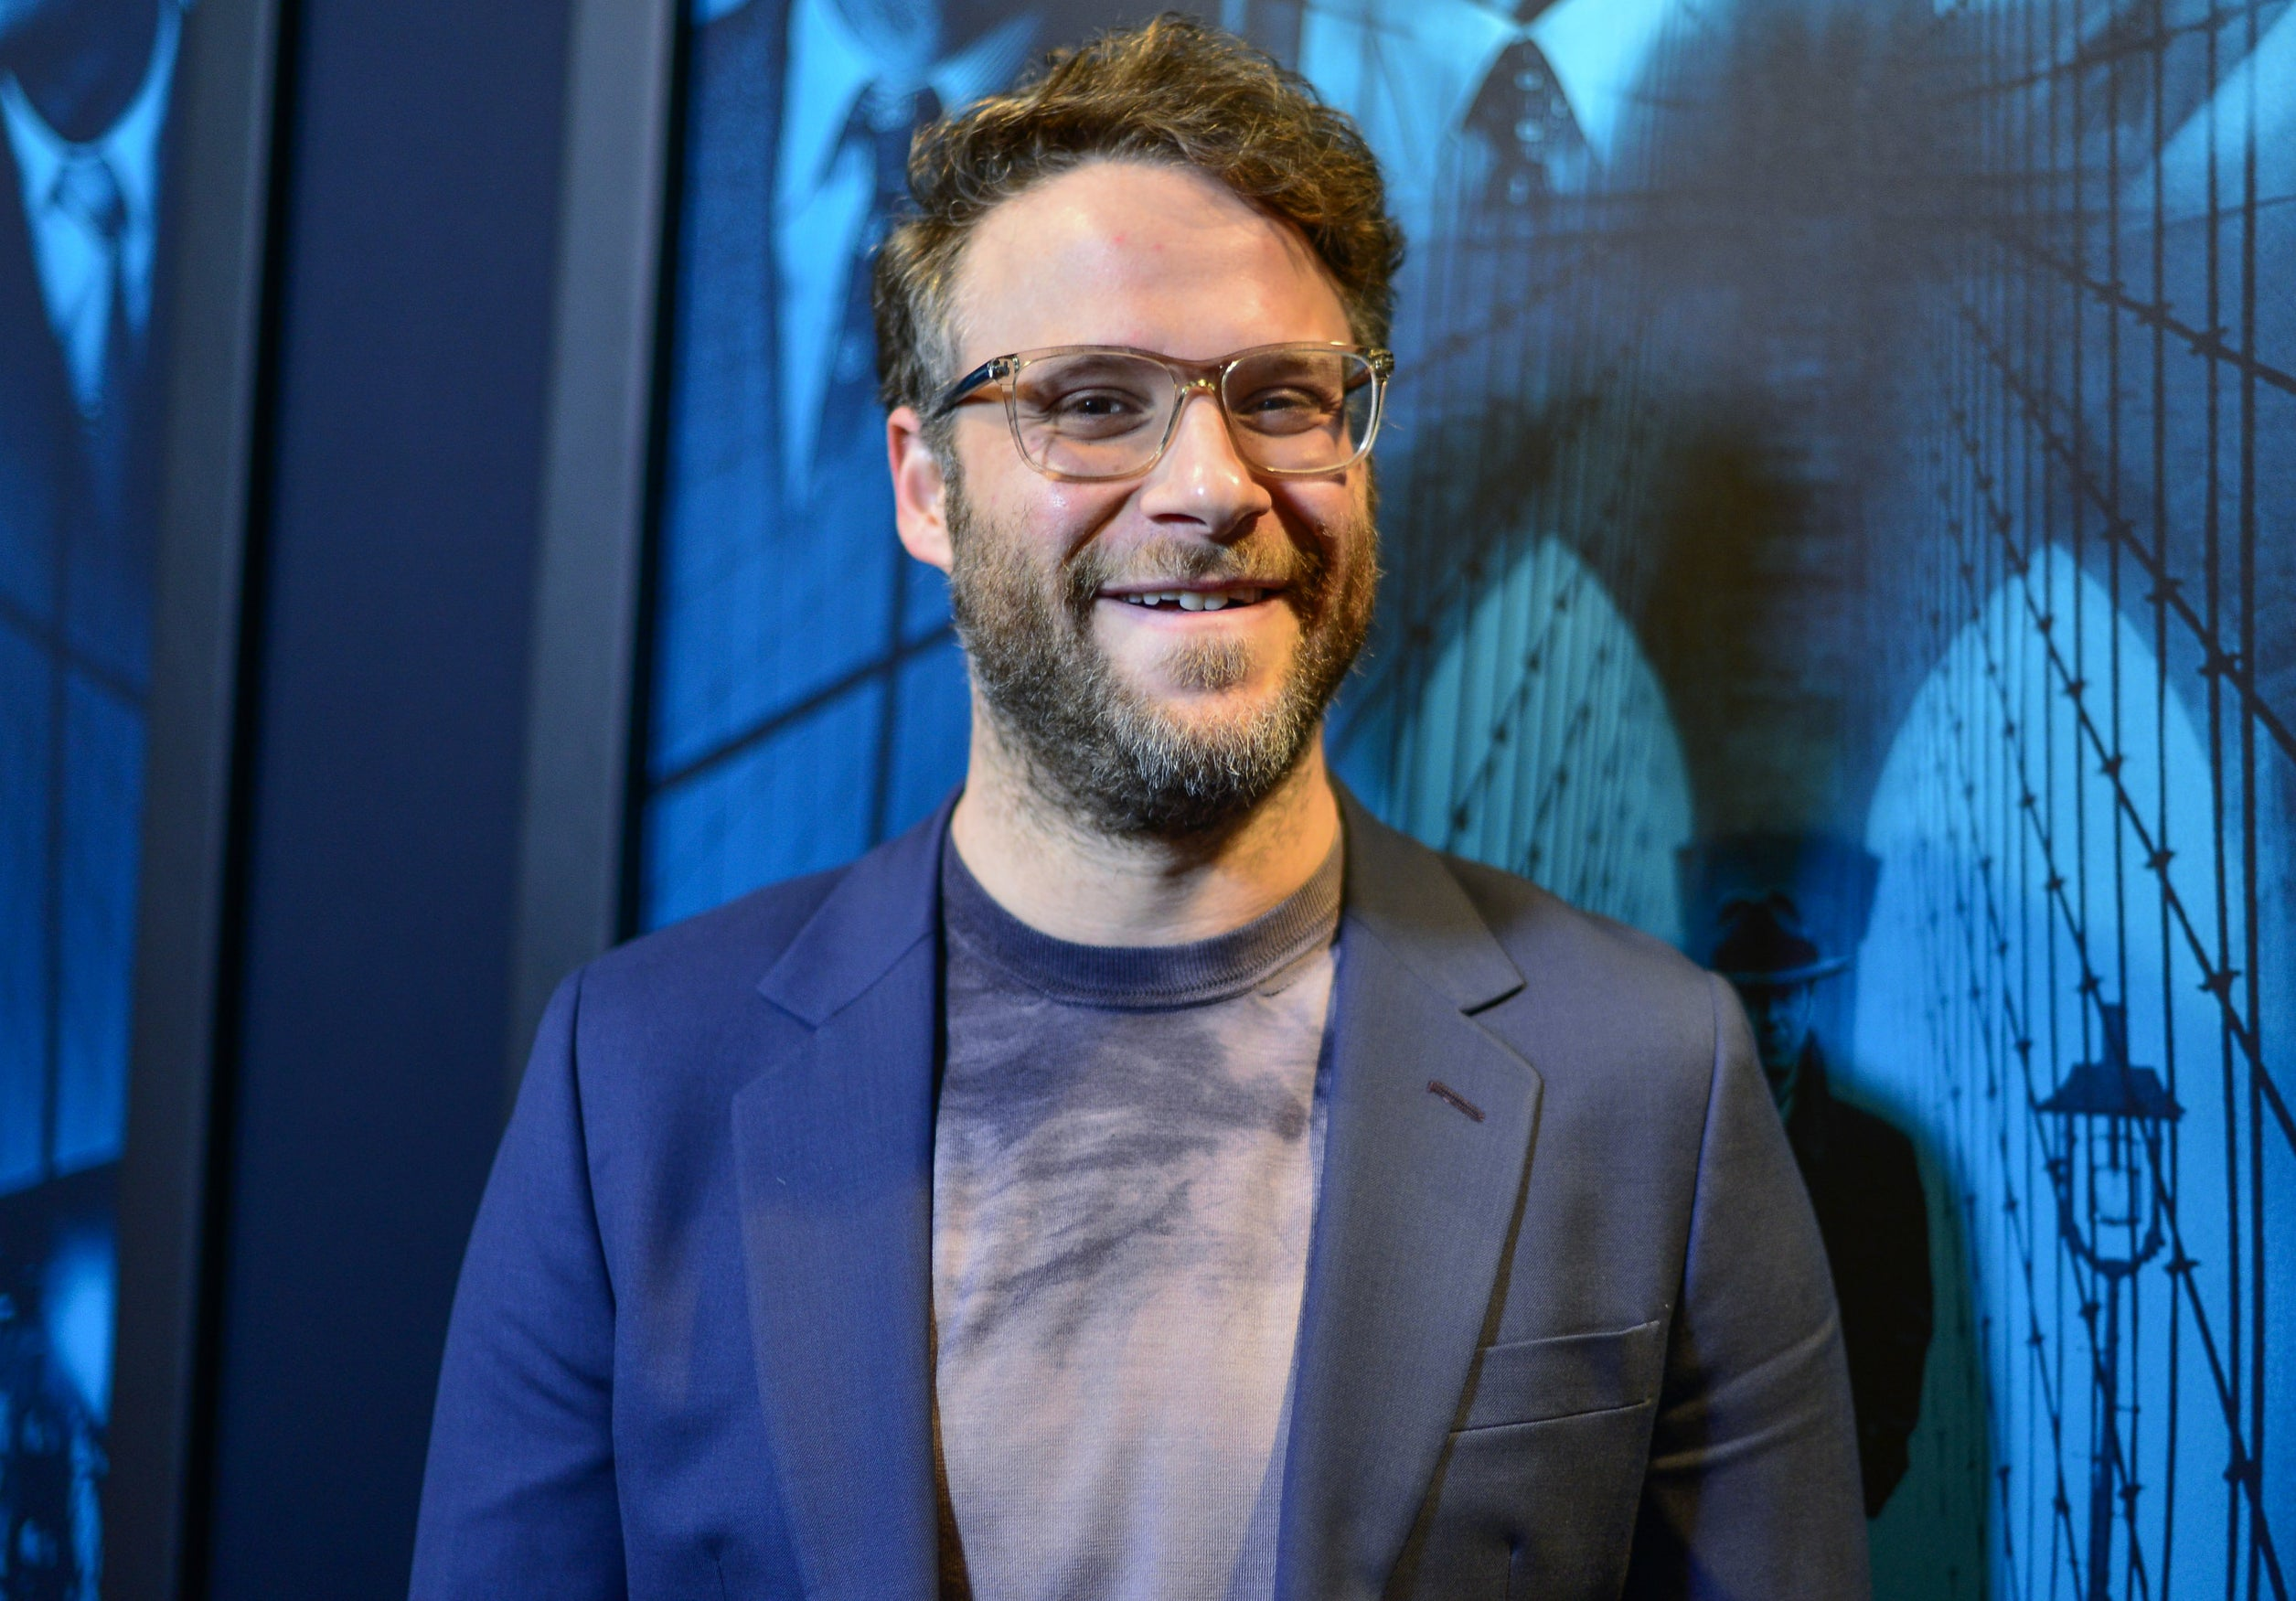 Seth smiles while wearing a blue blazer and t-shirt